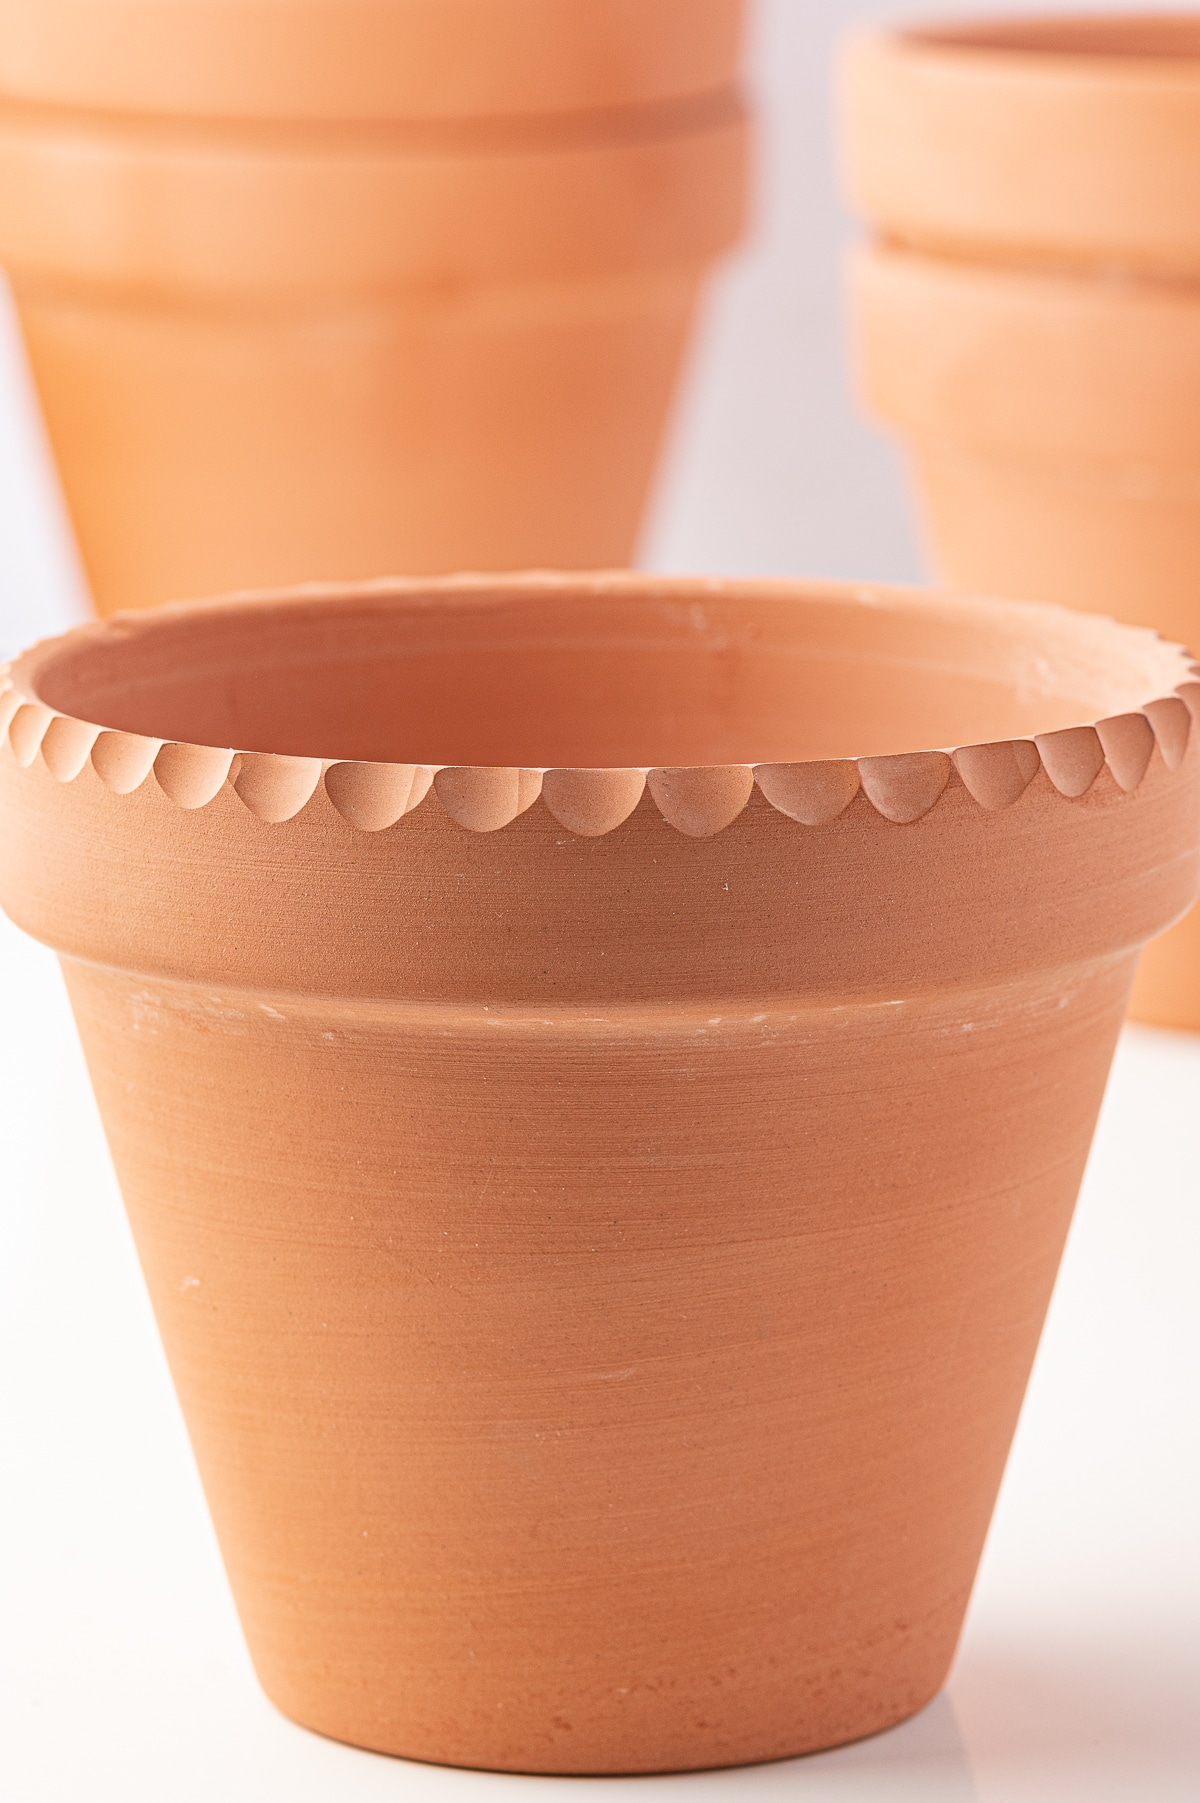 A terracotta pot with an engraved scalloped edge around the rim against a bright white background